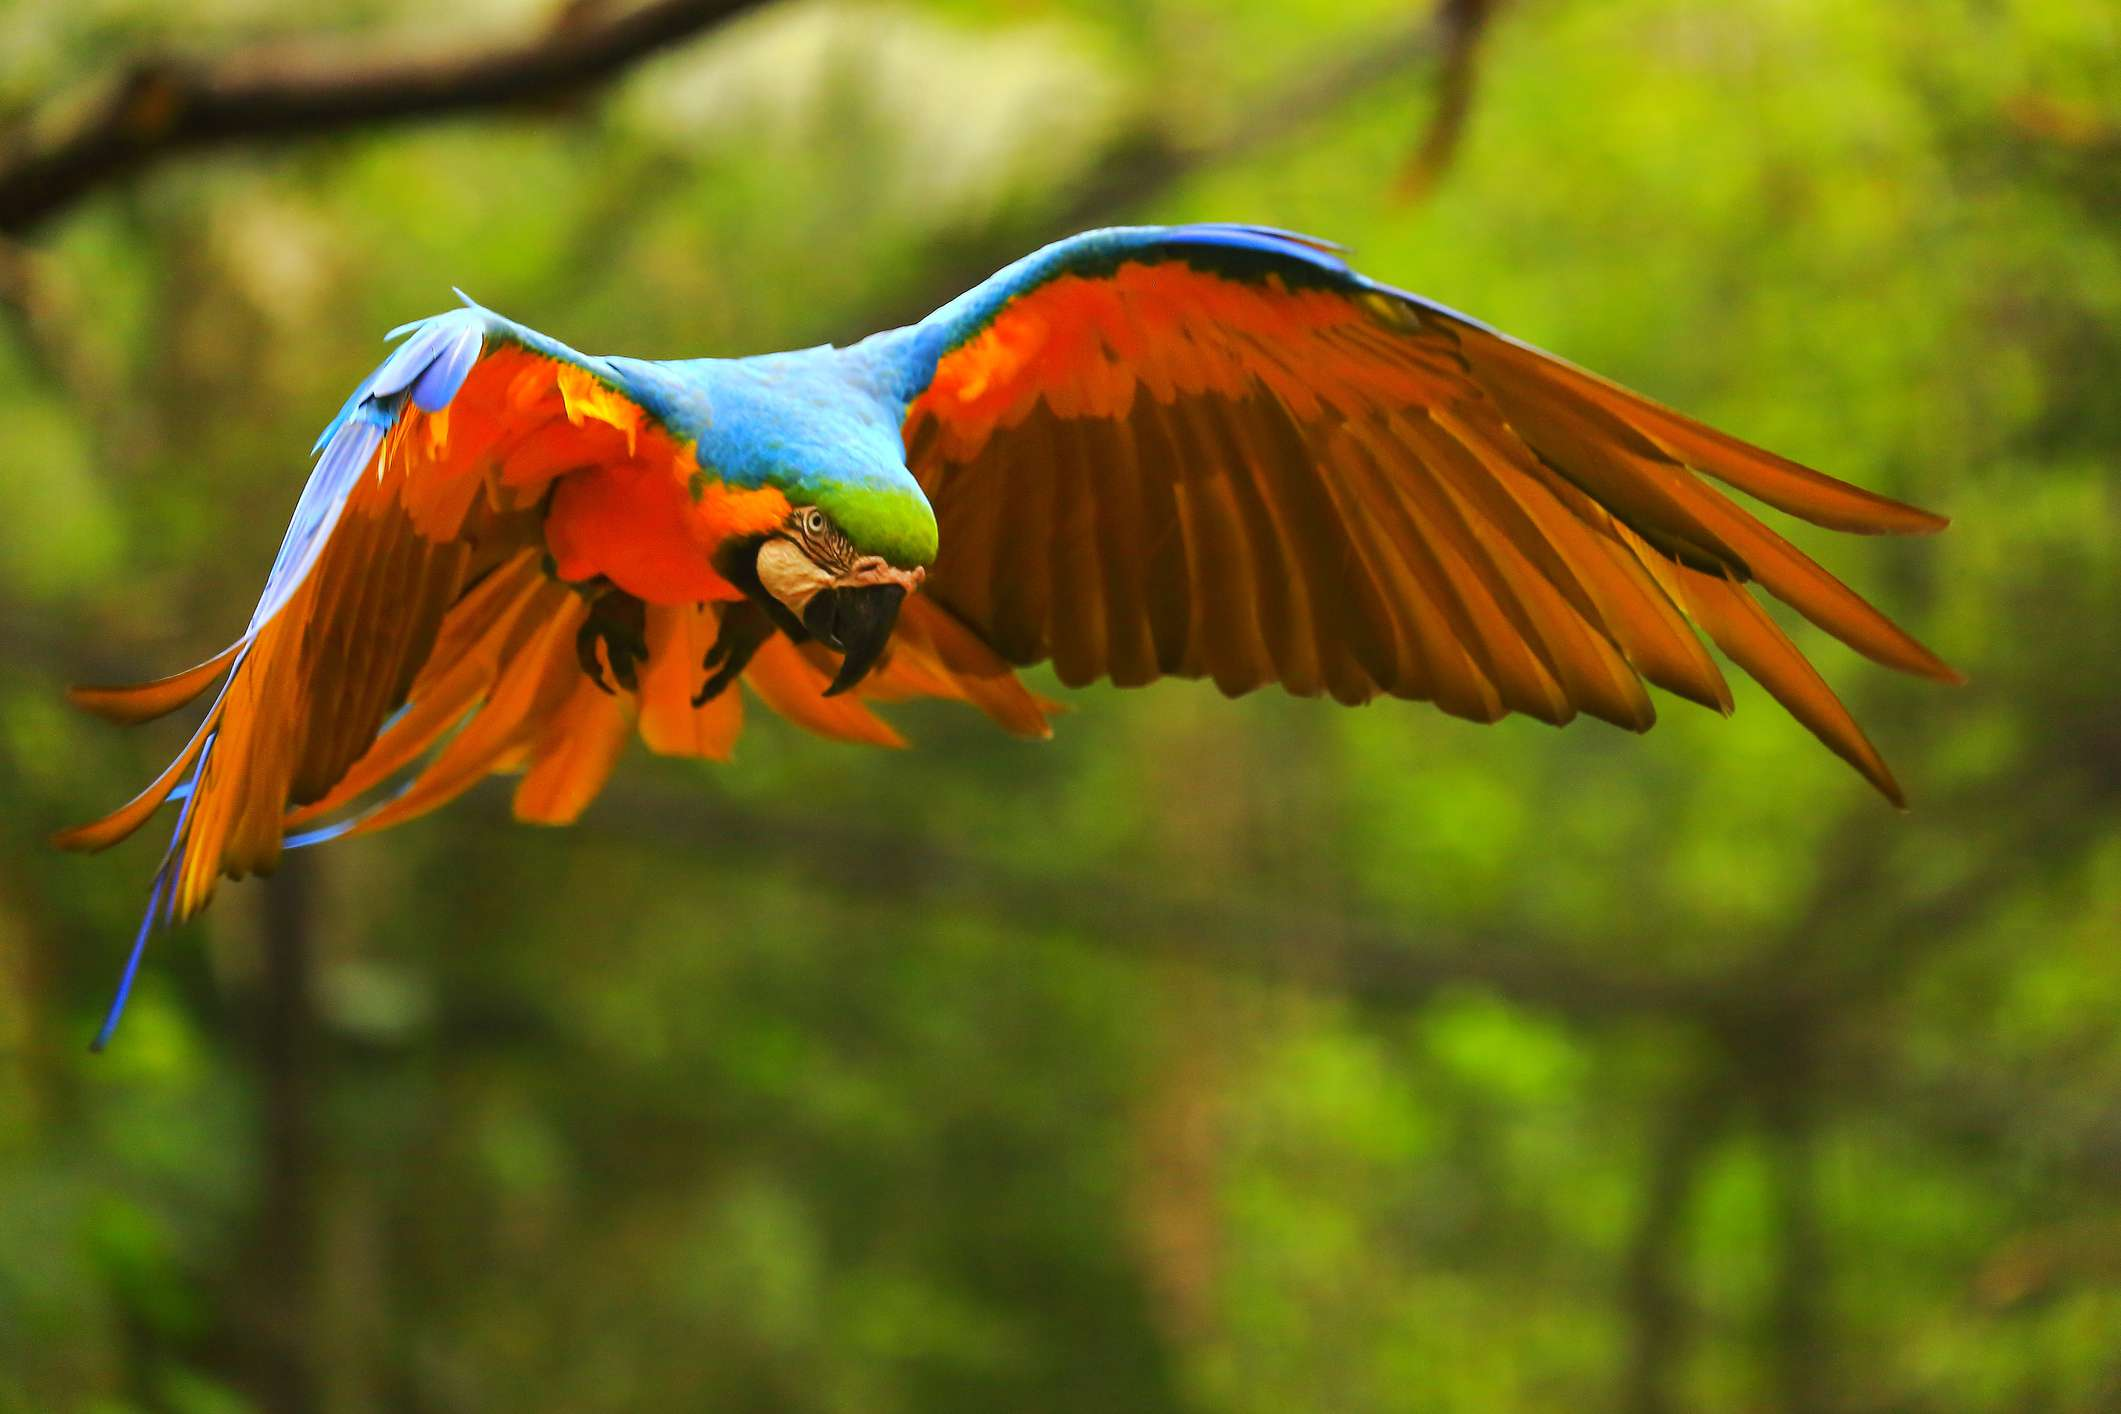 Blue and gold macaw in flight.